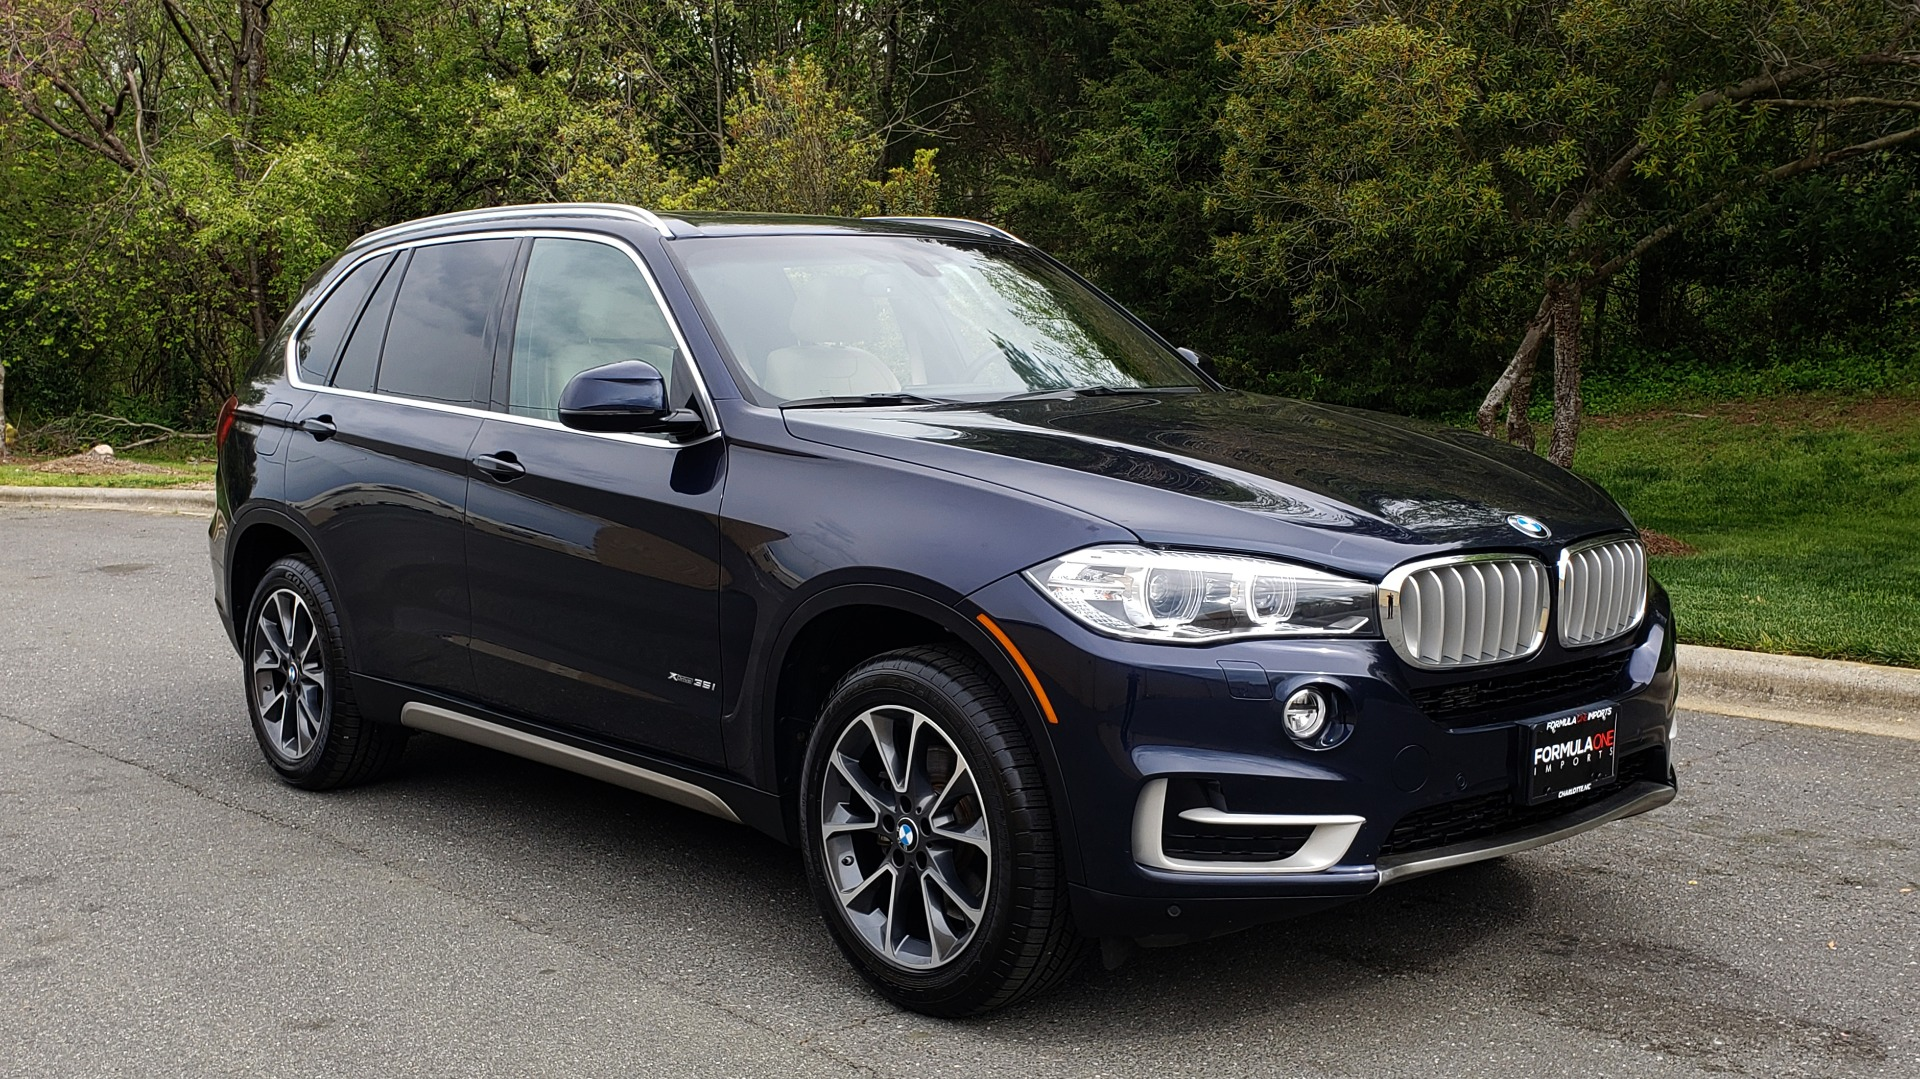 Used 2017 BMW X5 XDRIVE35I PREMIUM / NAV / SUNROOF/ CLD WTHR / HARMAN/KARDON / REARVIEW for sale $30,595 at Formula Imports in Charlotte NC 28227 4